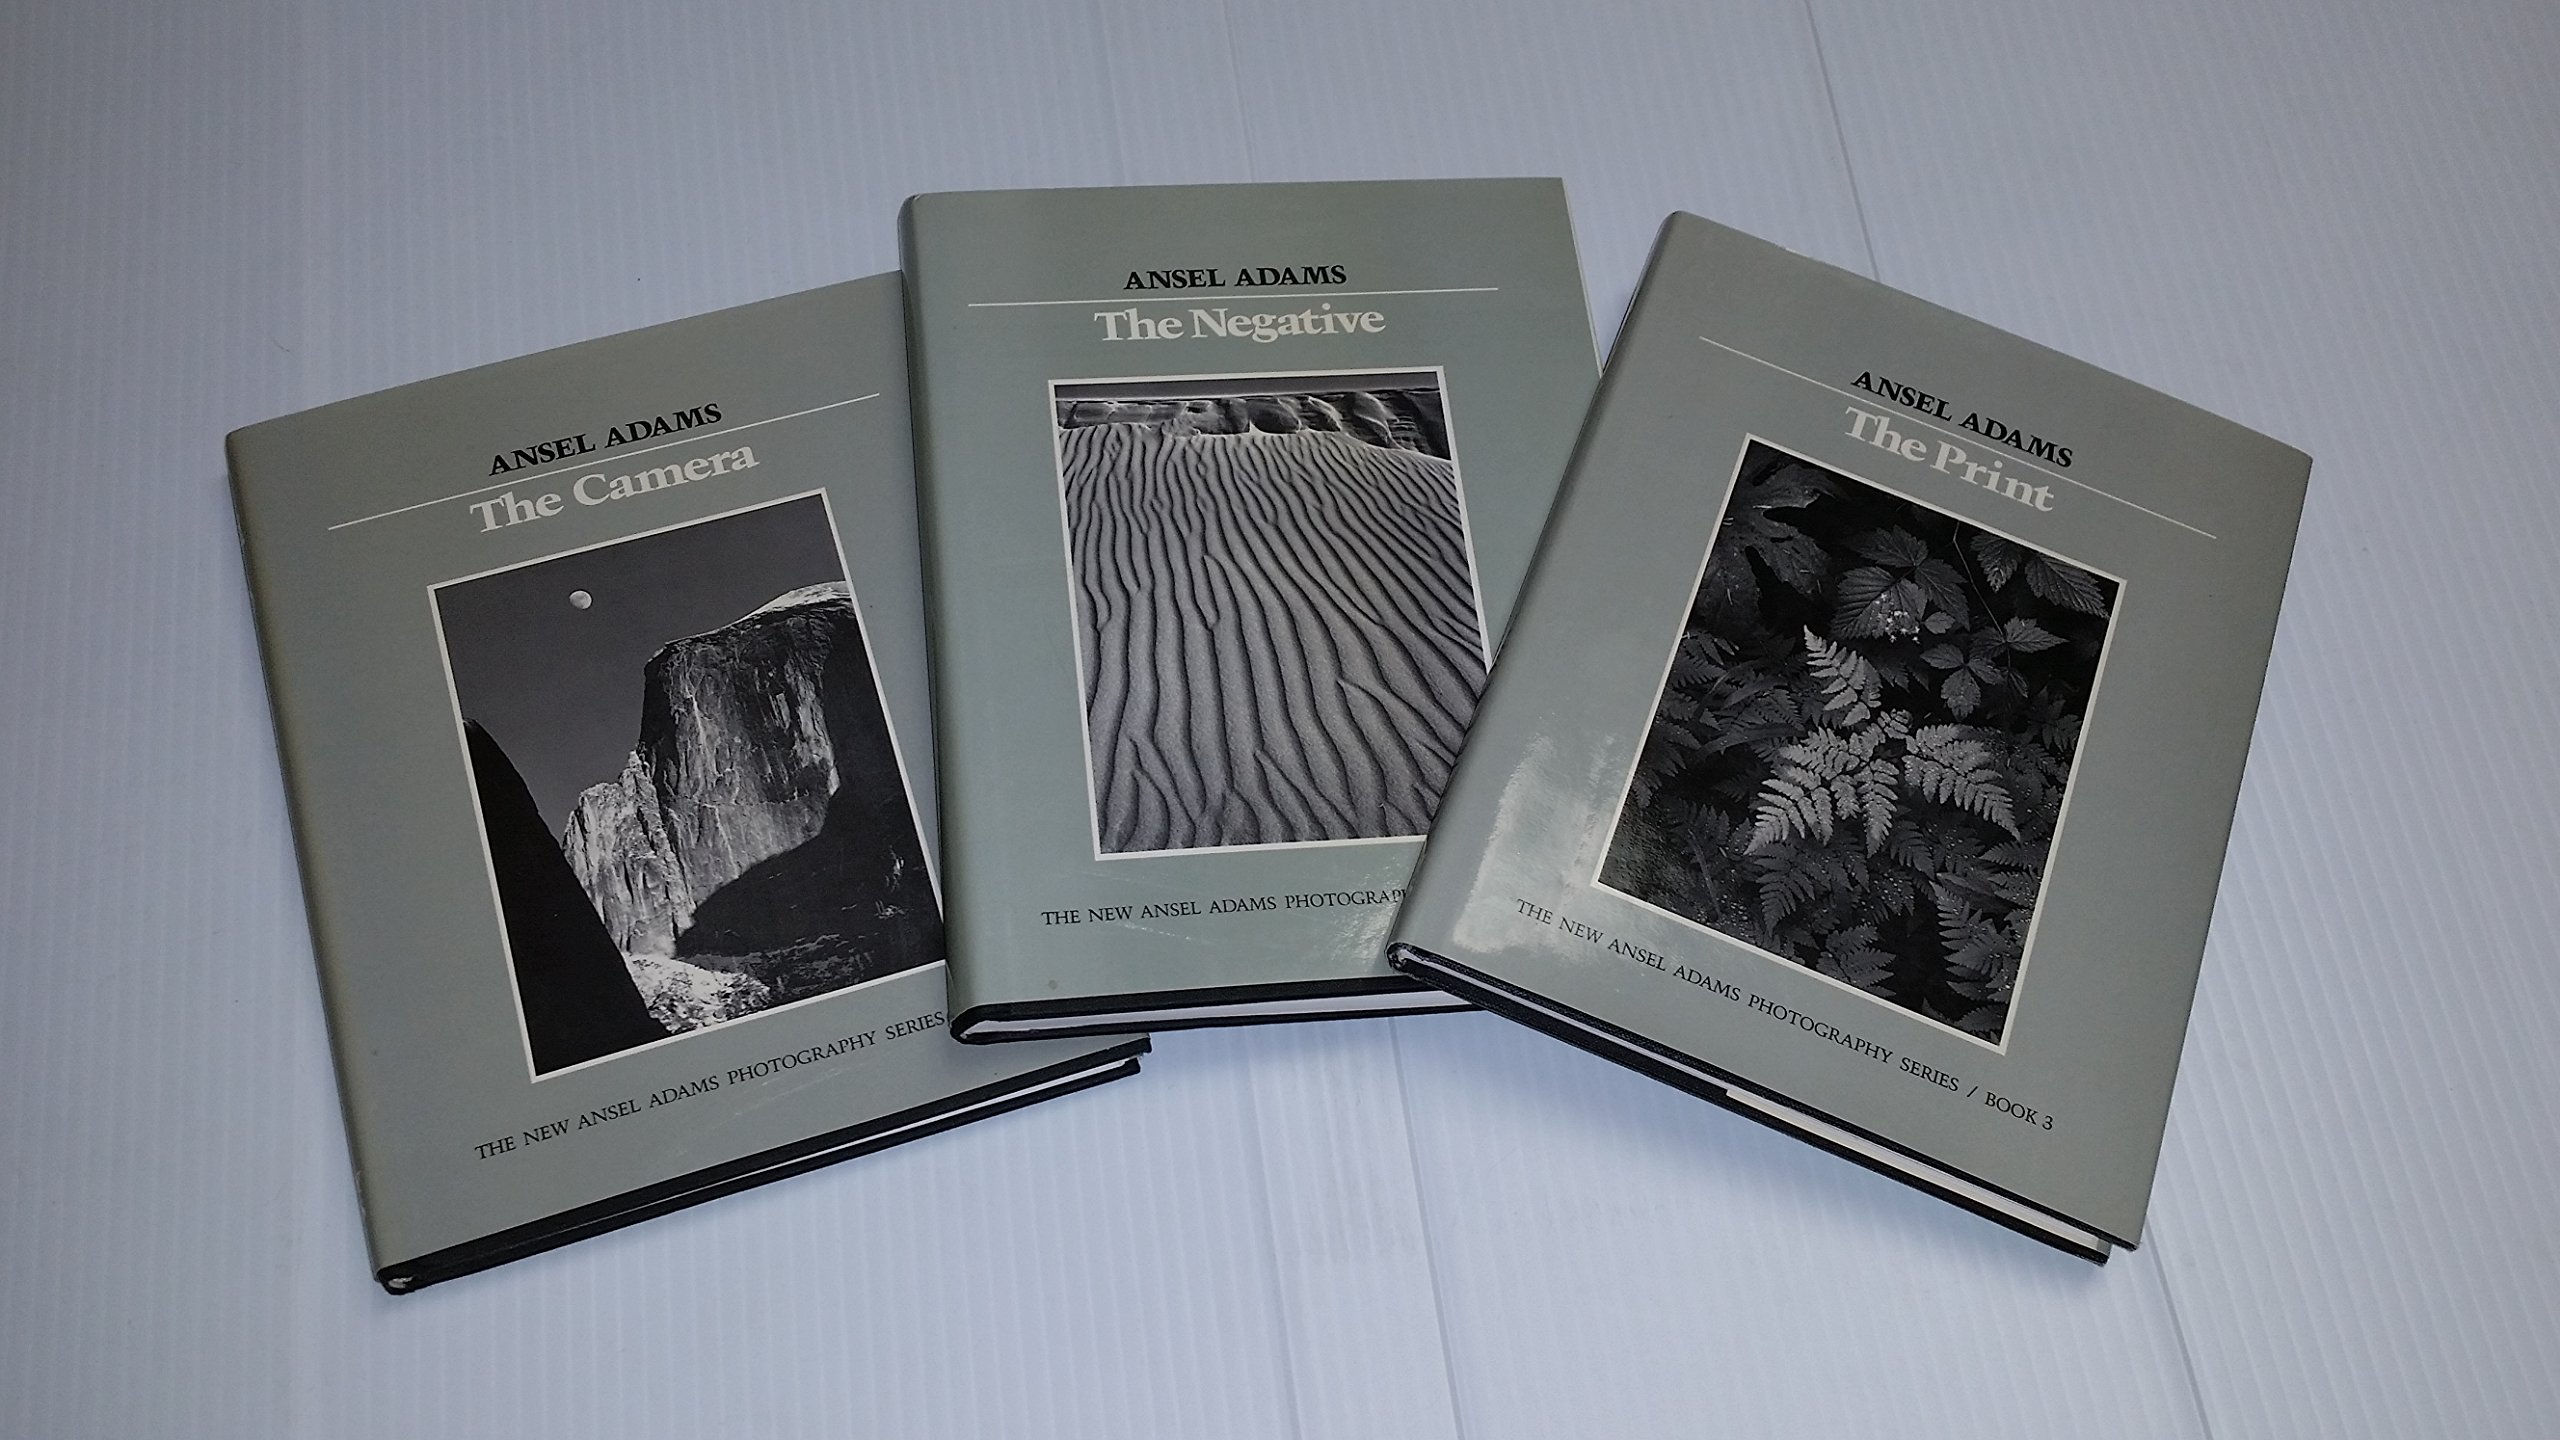 the new ansel adams photography series vol 1 the camera vol 2 the negative vol 3 the print